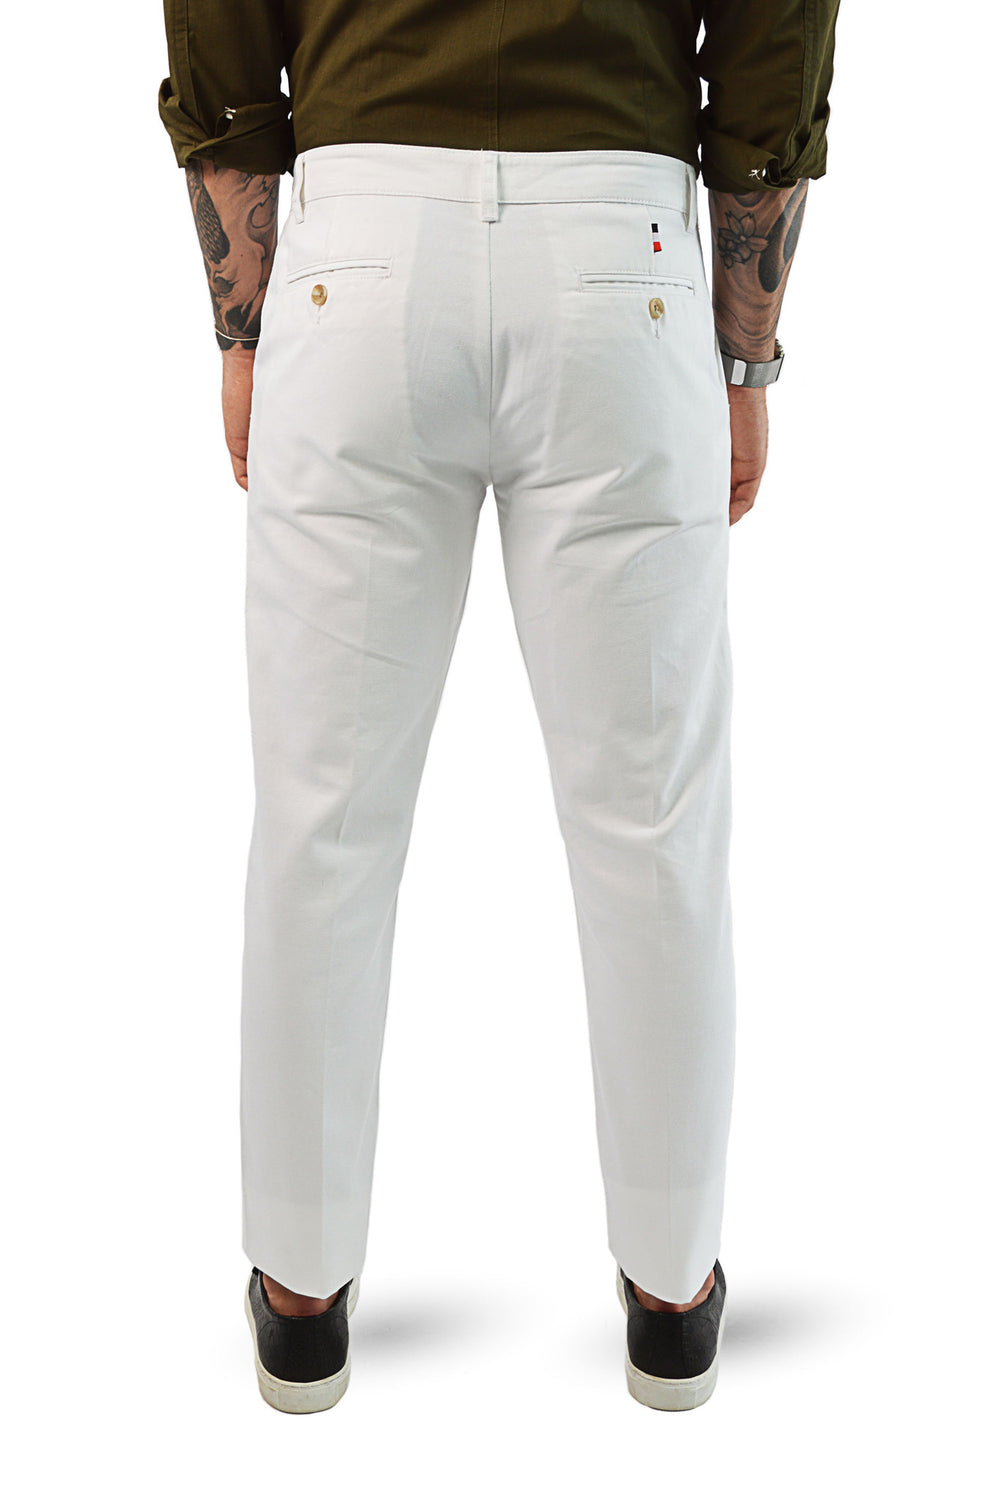 back view white chinos